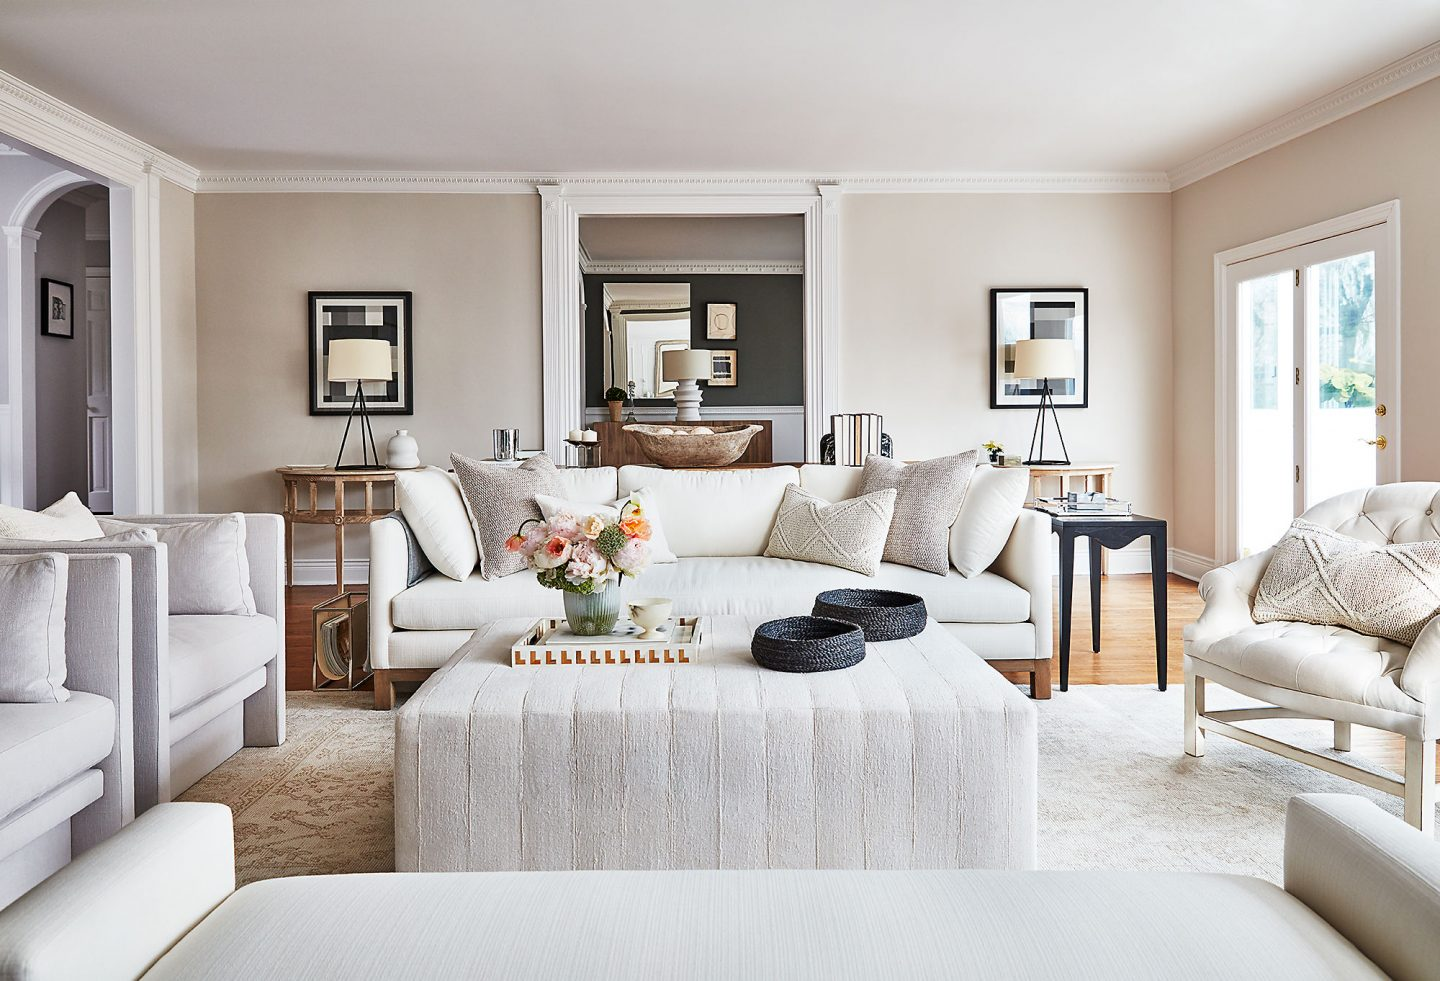 If a white sophisticated and comfy living room sounds heavenly, you'll love this story for getting the look!